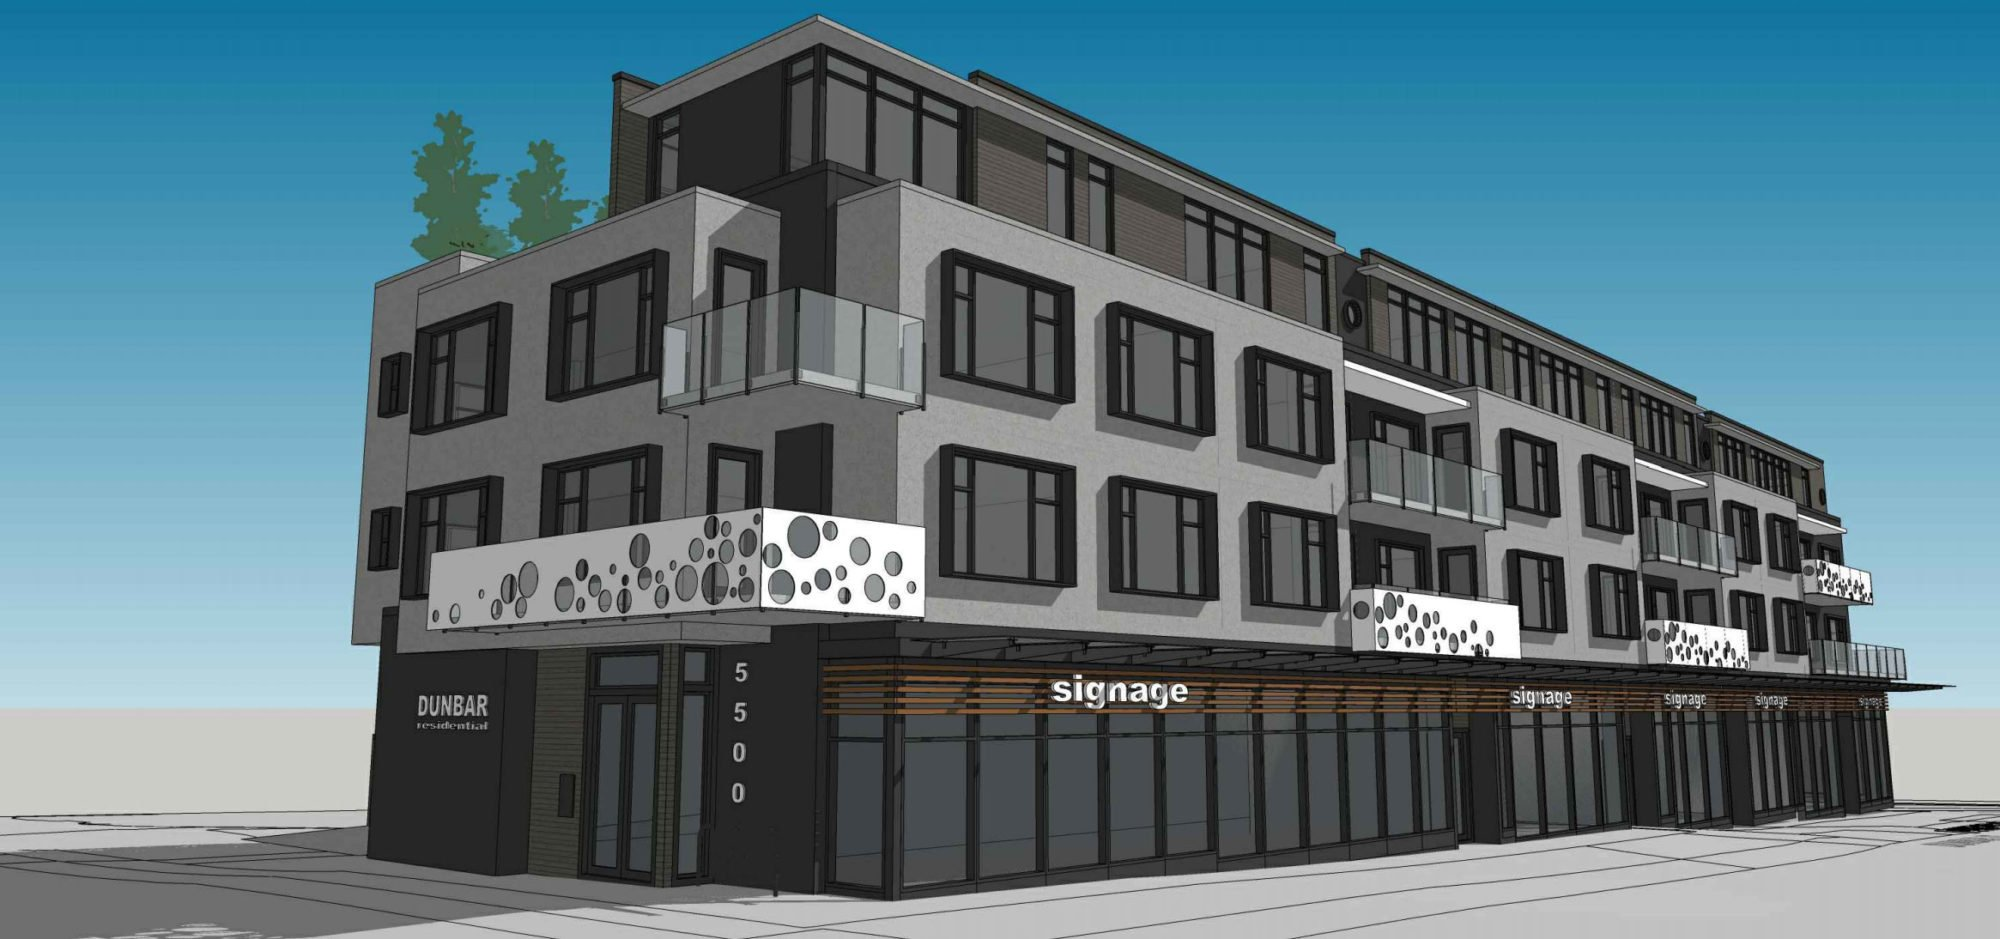 Condos, retail proposed for 5520 Dunbar Street in Dunbar-Southlands